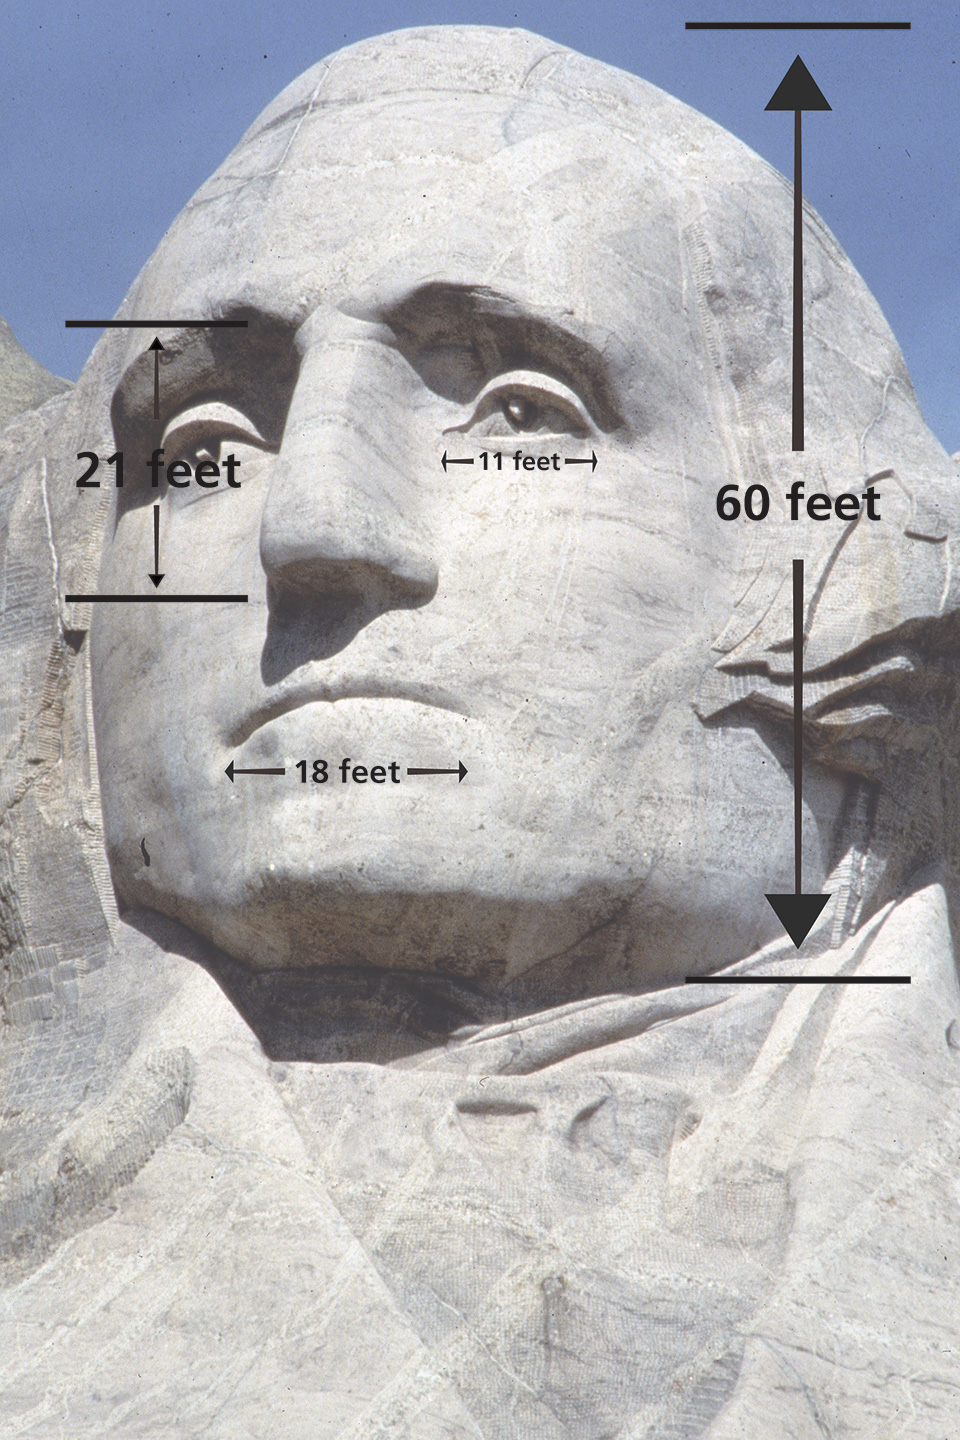 How Big Are The Heads? - Mount Rushmore National Memorial (U.S. ...